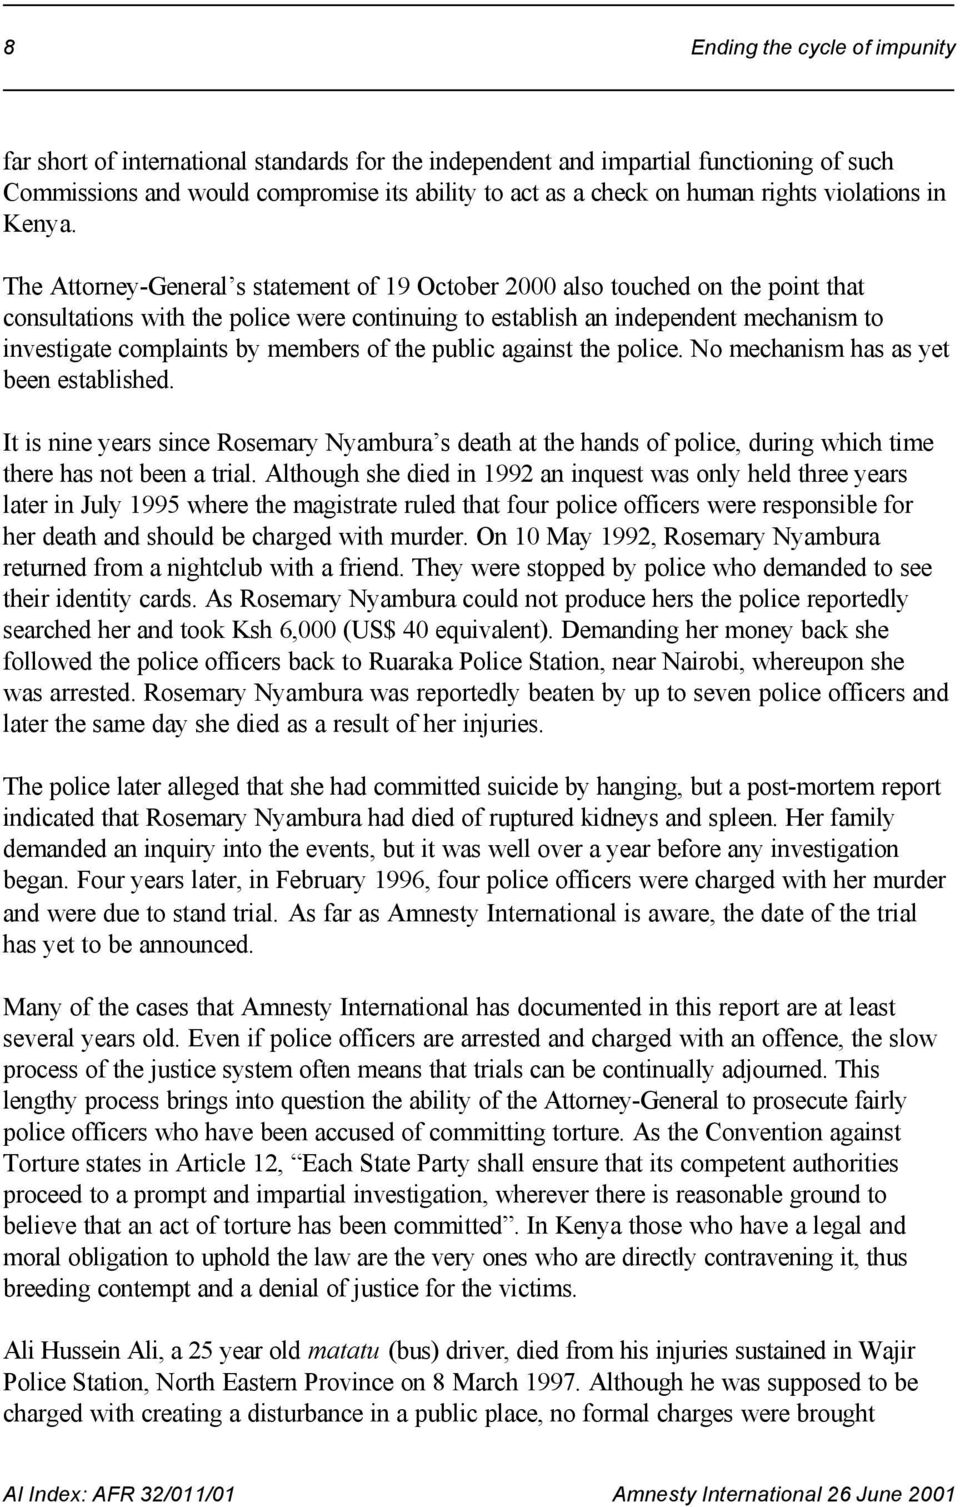 The Attorney-General s statement of 19 October 2000 also touched on the point that consultations with the police were continuing to establish an independent mechanism to investigate complaints by